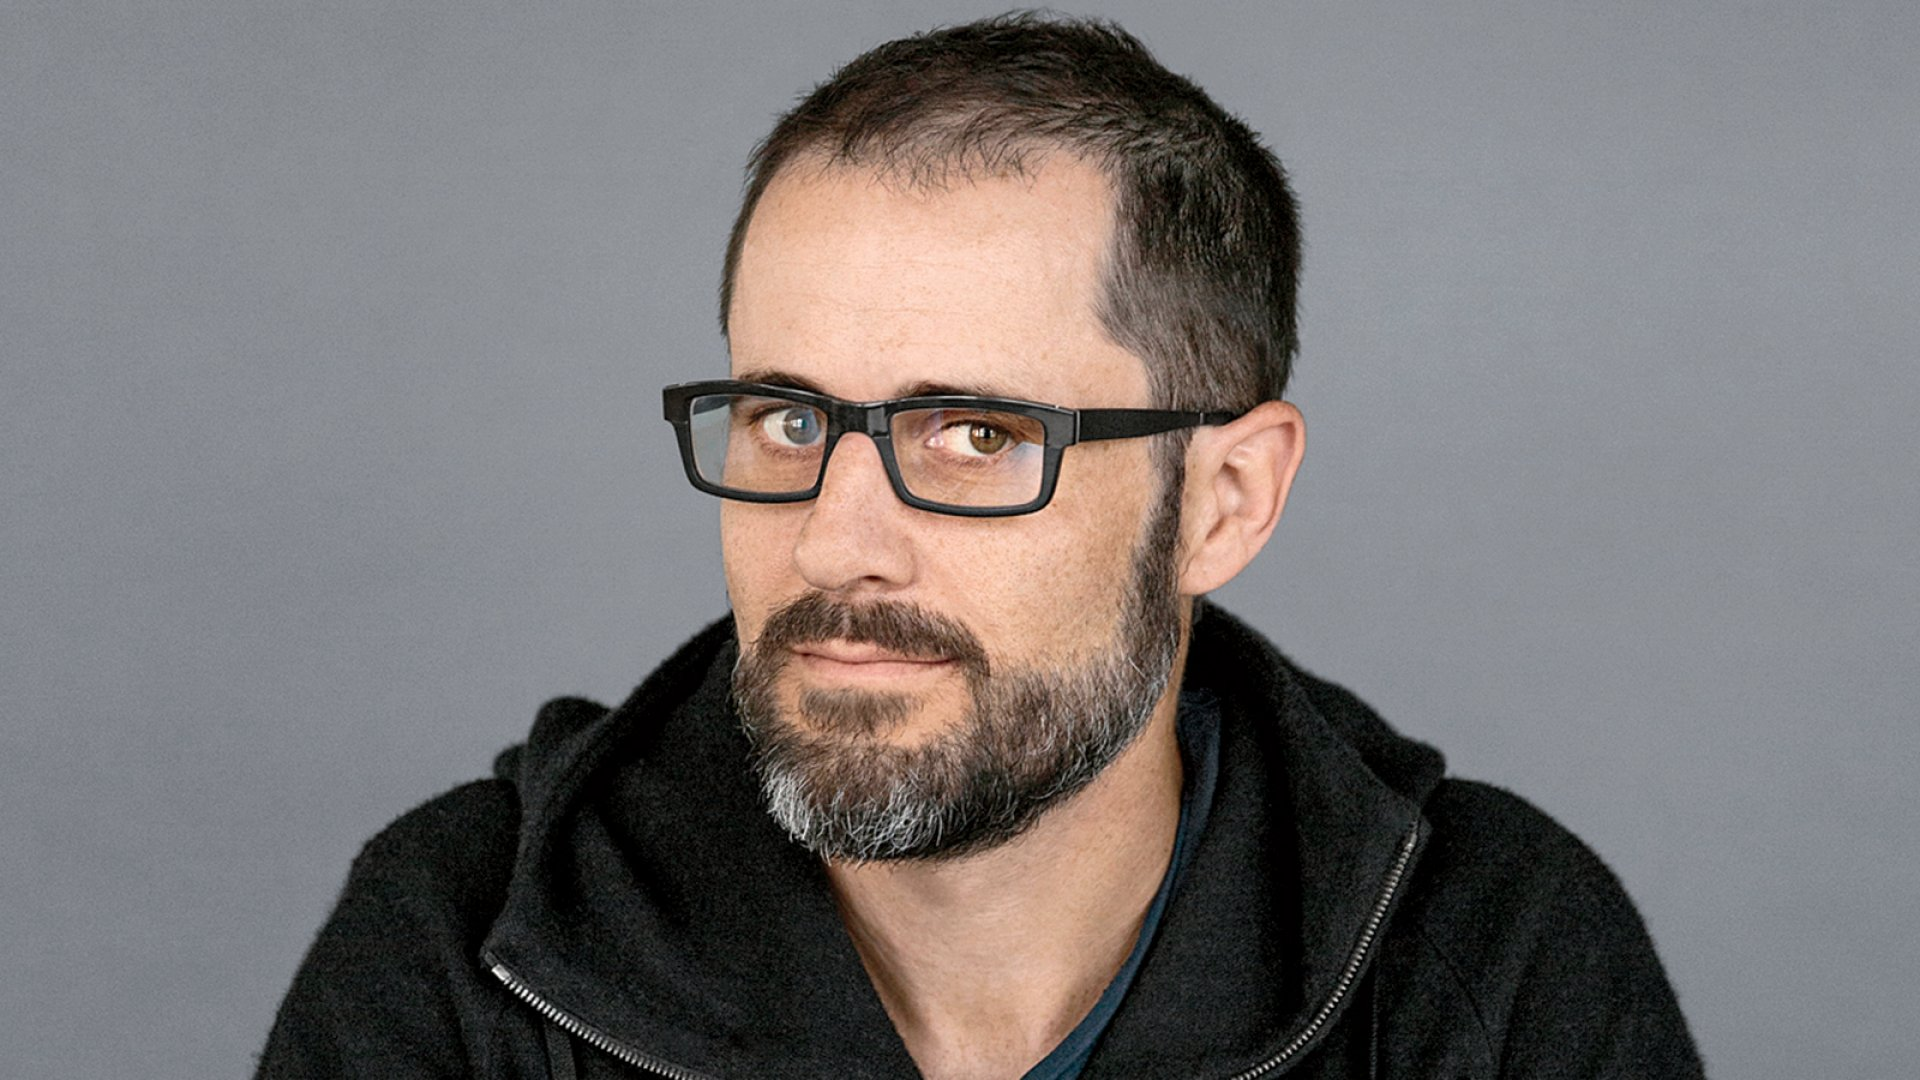 """""""I'm still an optimist,"""" says Evan Williams, the the co-founder and CEO of publishing platform Medium. """"We can create a better media world than we've ever seen."""""""